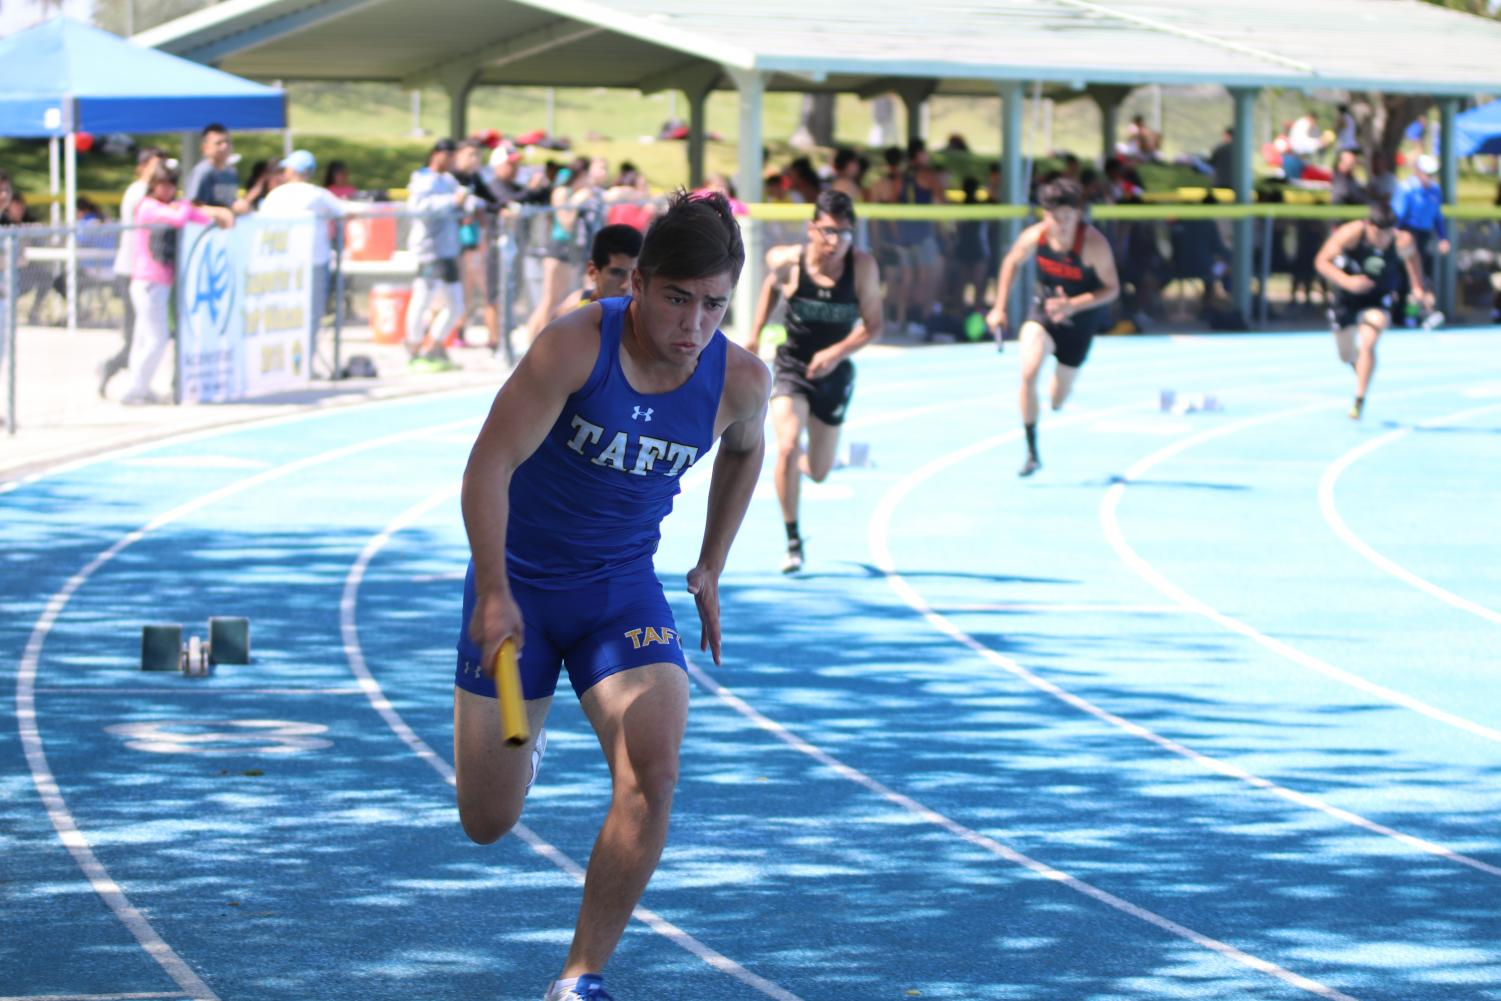 Jordan Miranda runs the first leg in the varsity boys 4x100 meter relay at a previous track meet on April 10.